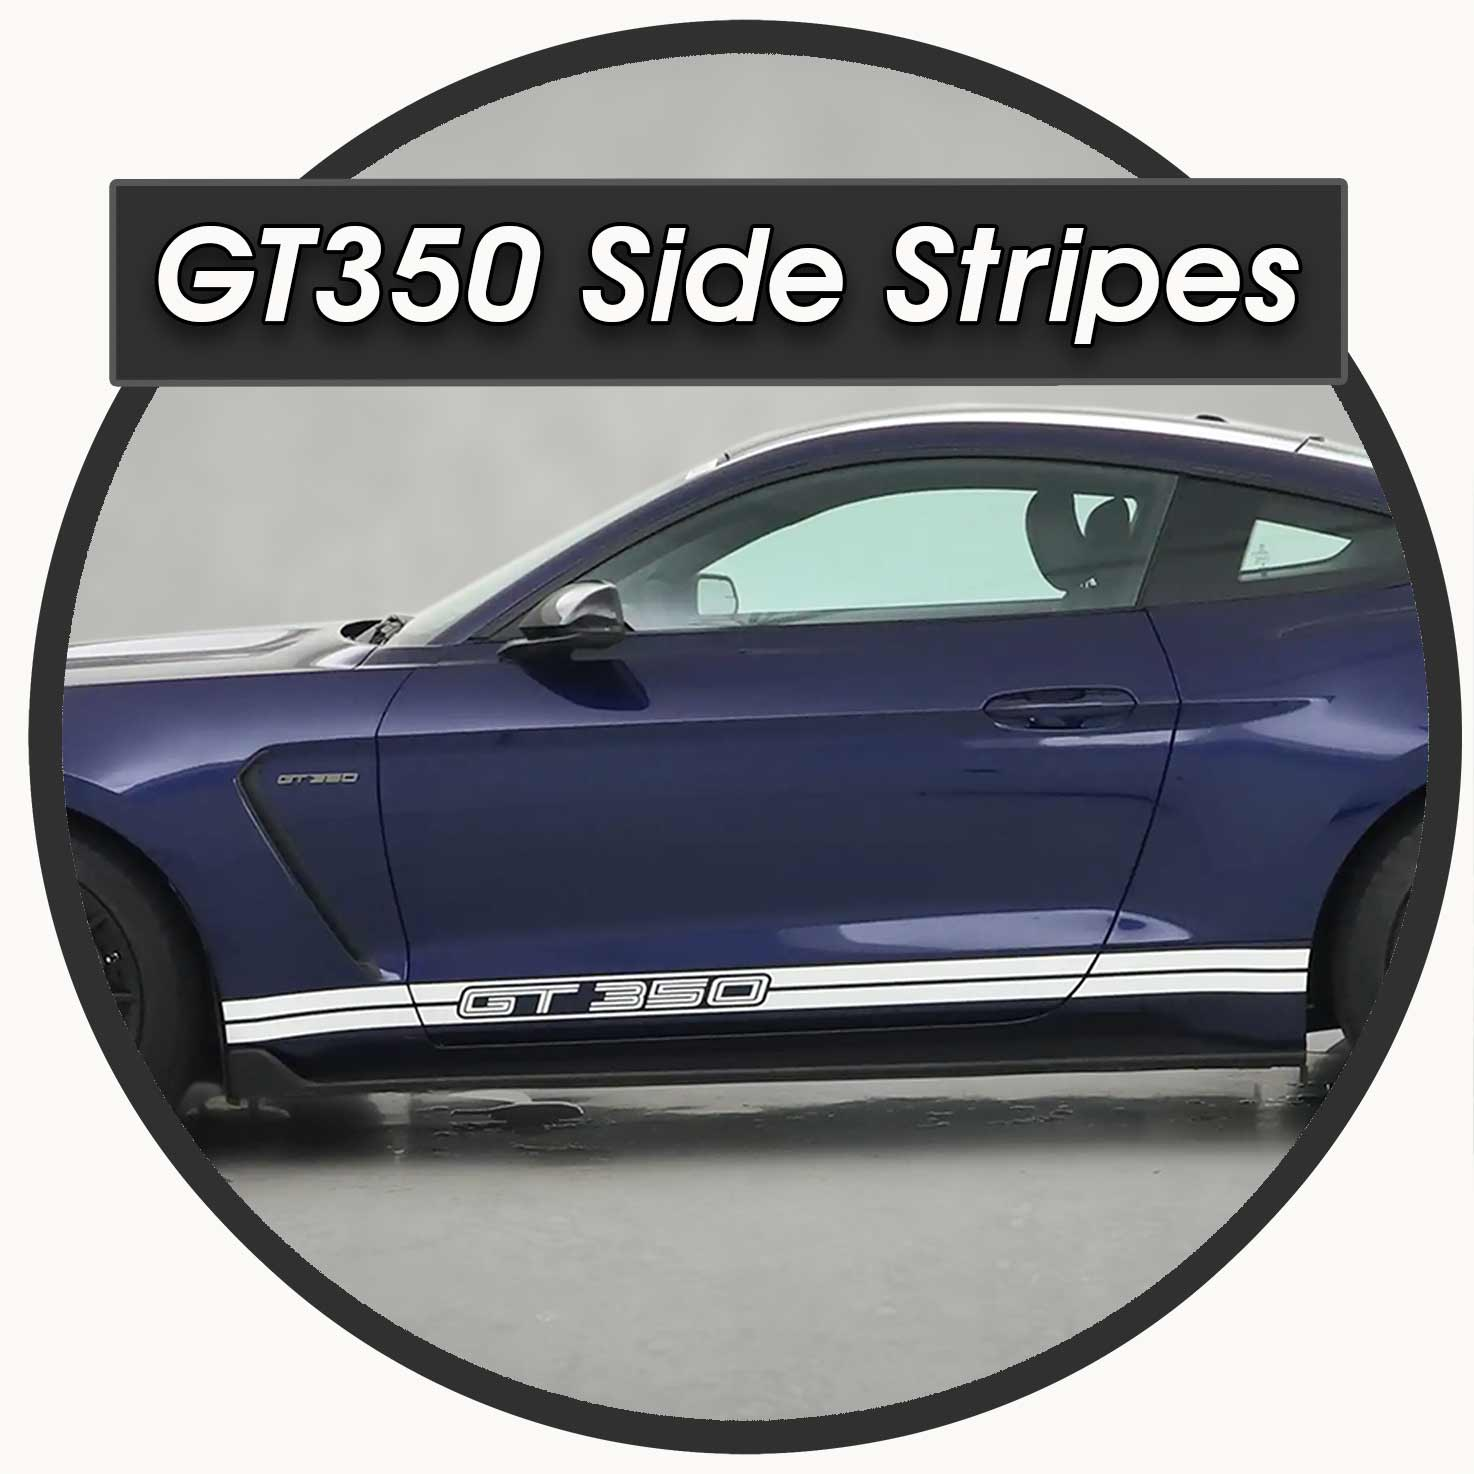 white side stripes on a Shelby GT350 Mustang 2016-2020